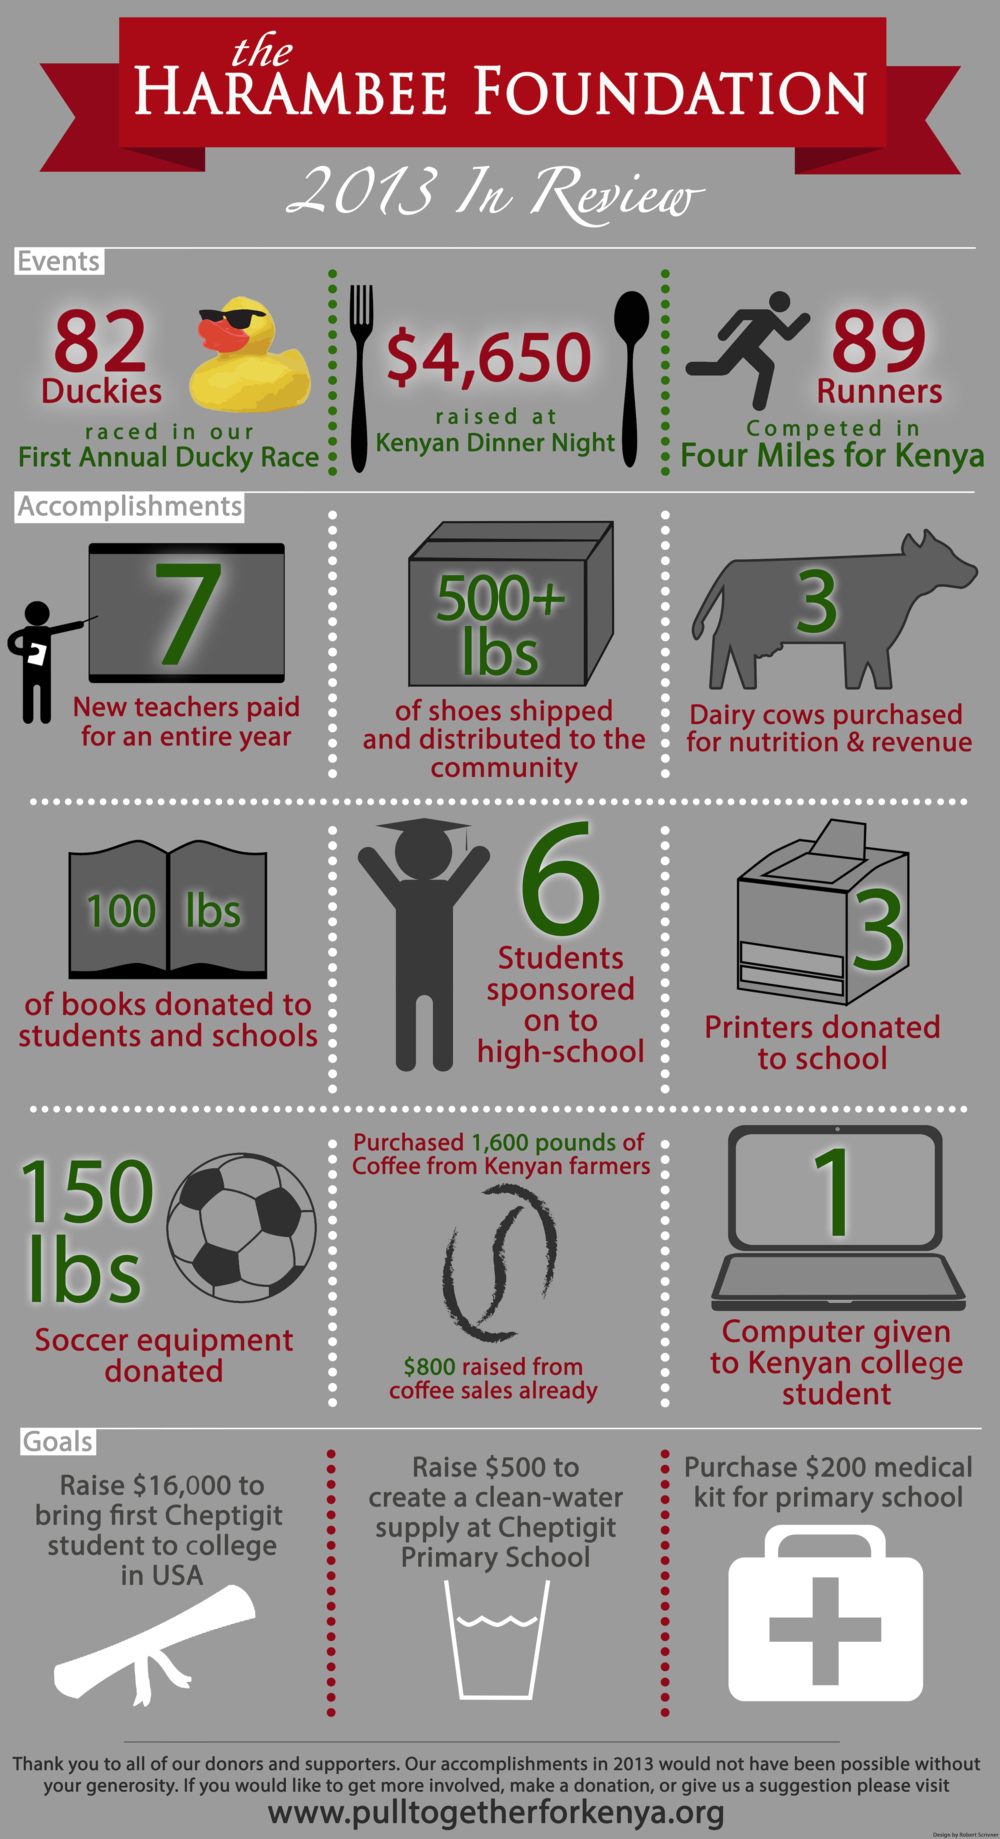 Click the image above for large view of our 2013 Accomplishments